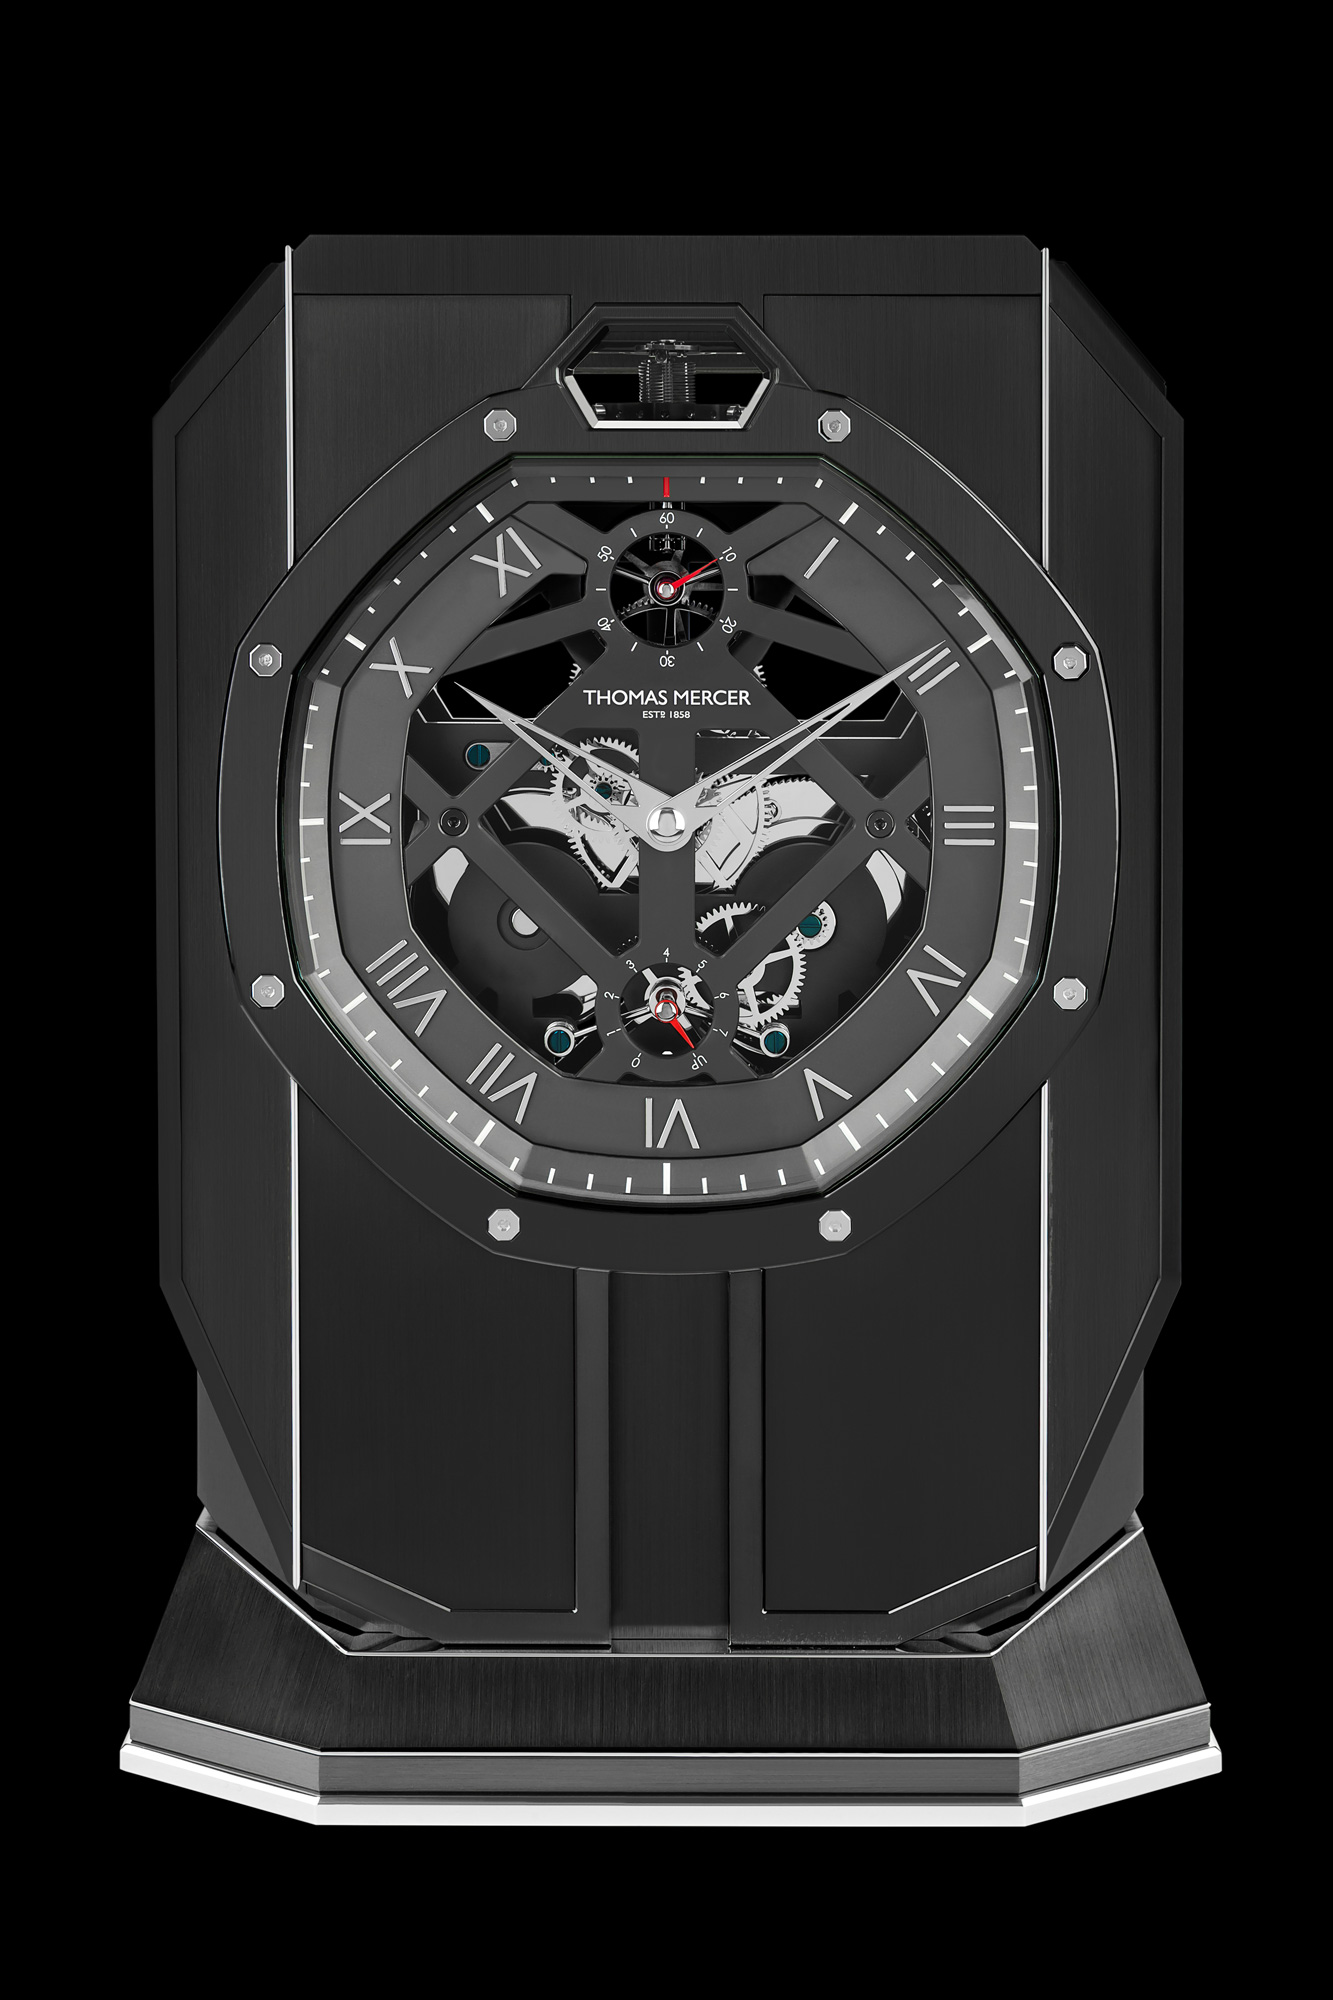 The Thomas Mercer Brittanica Black Table Chronometer